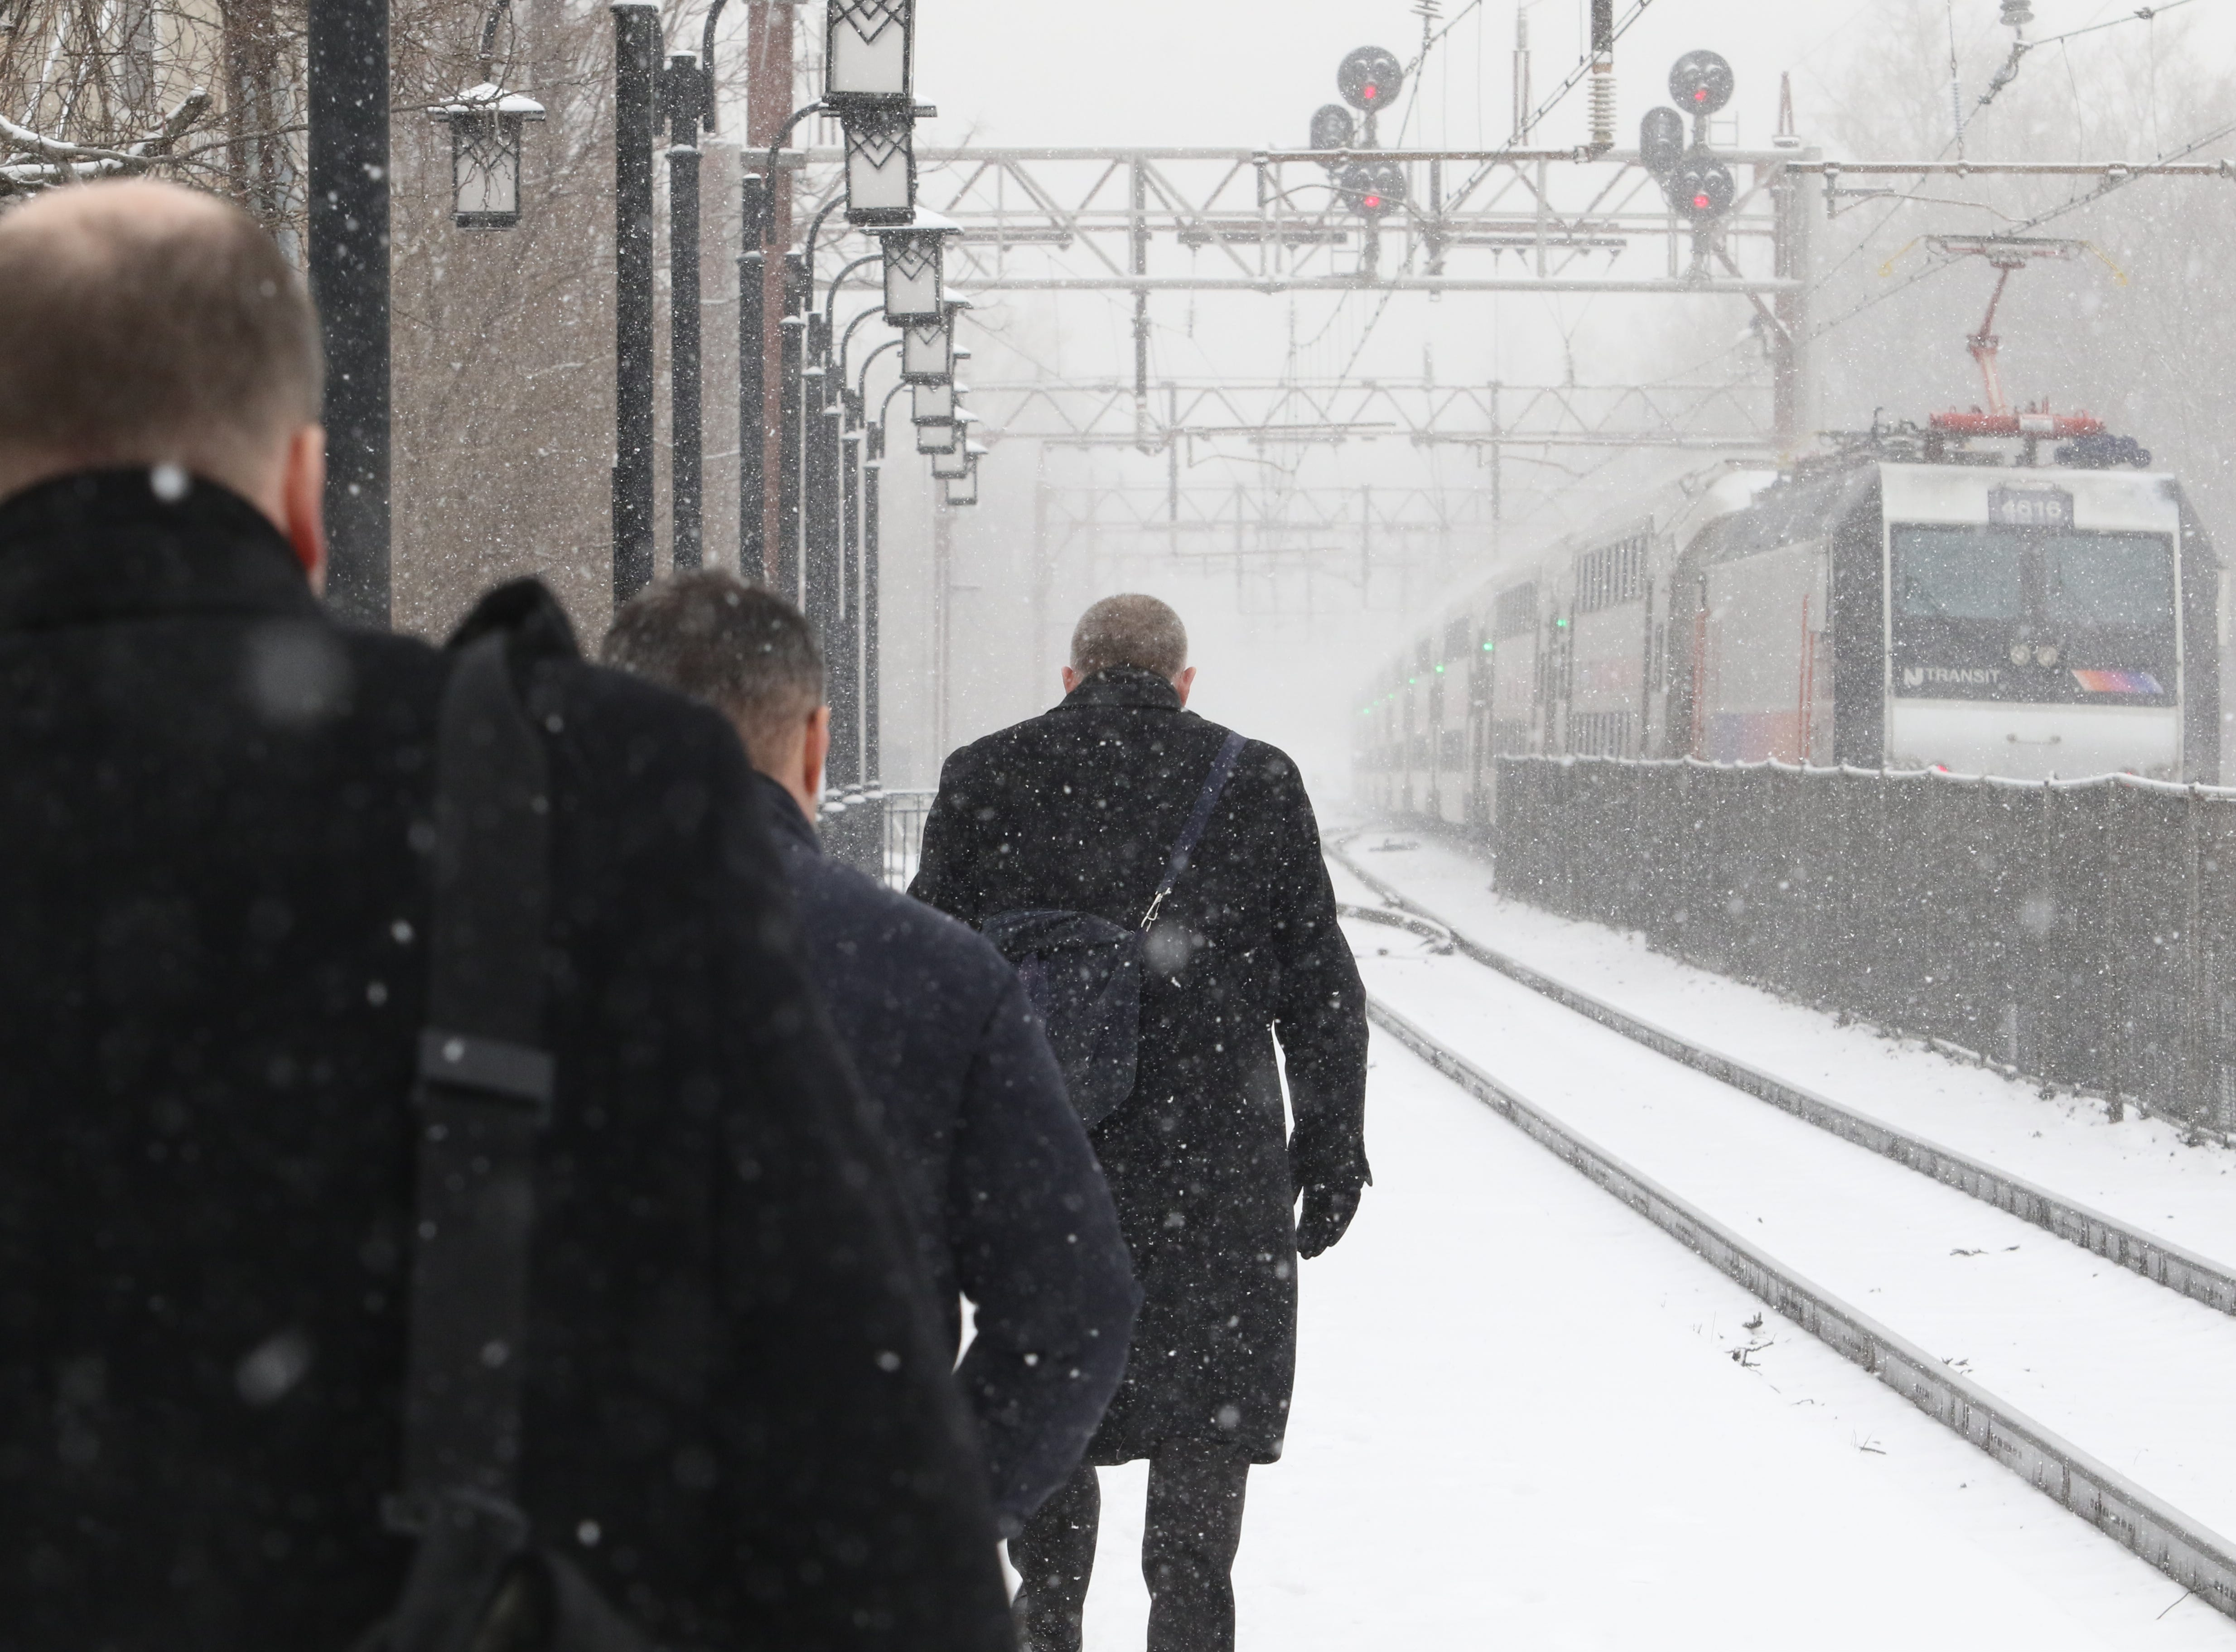 Afternoon commuters depart the train that pulled into the Morristown Train Station in heavy snow this afternoon on February 20, 2018.